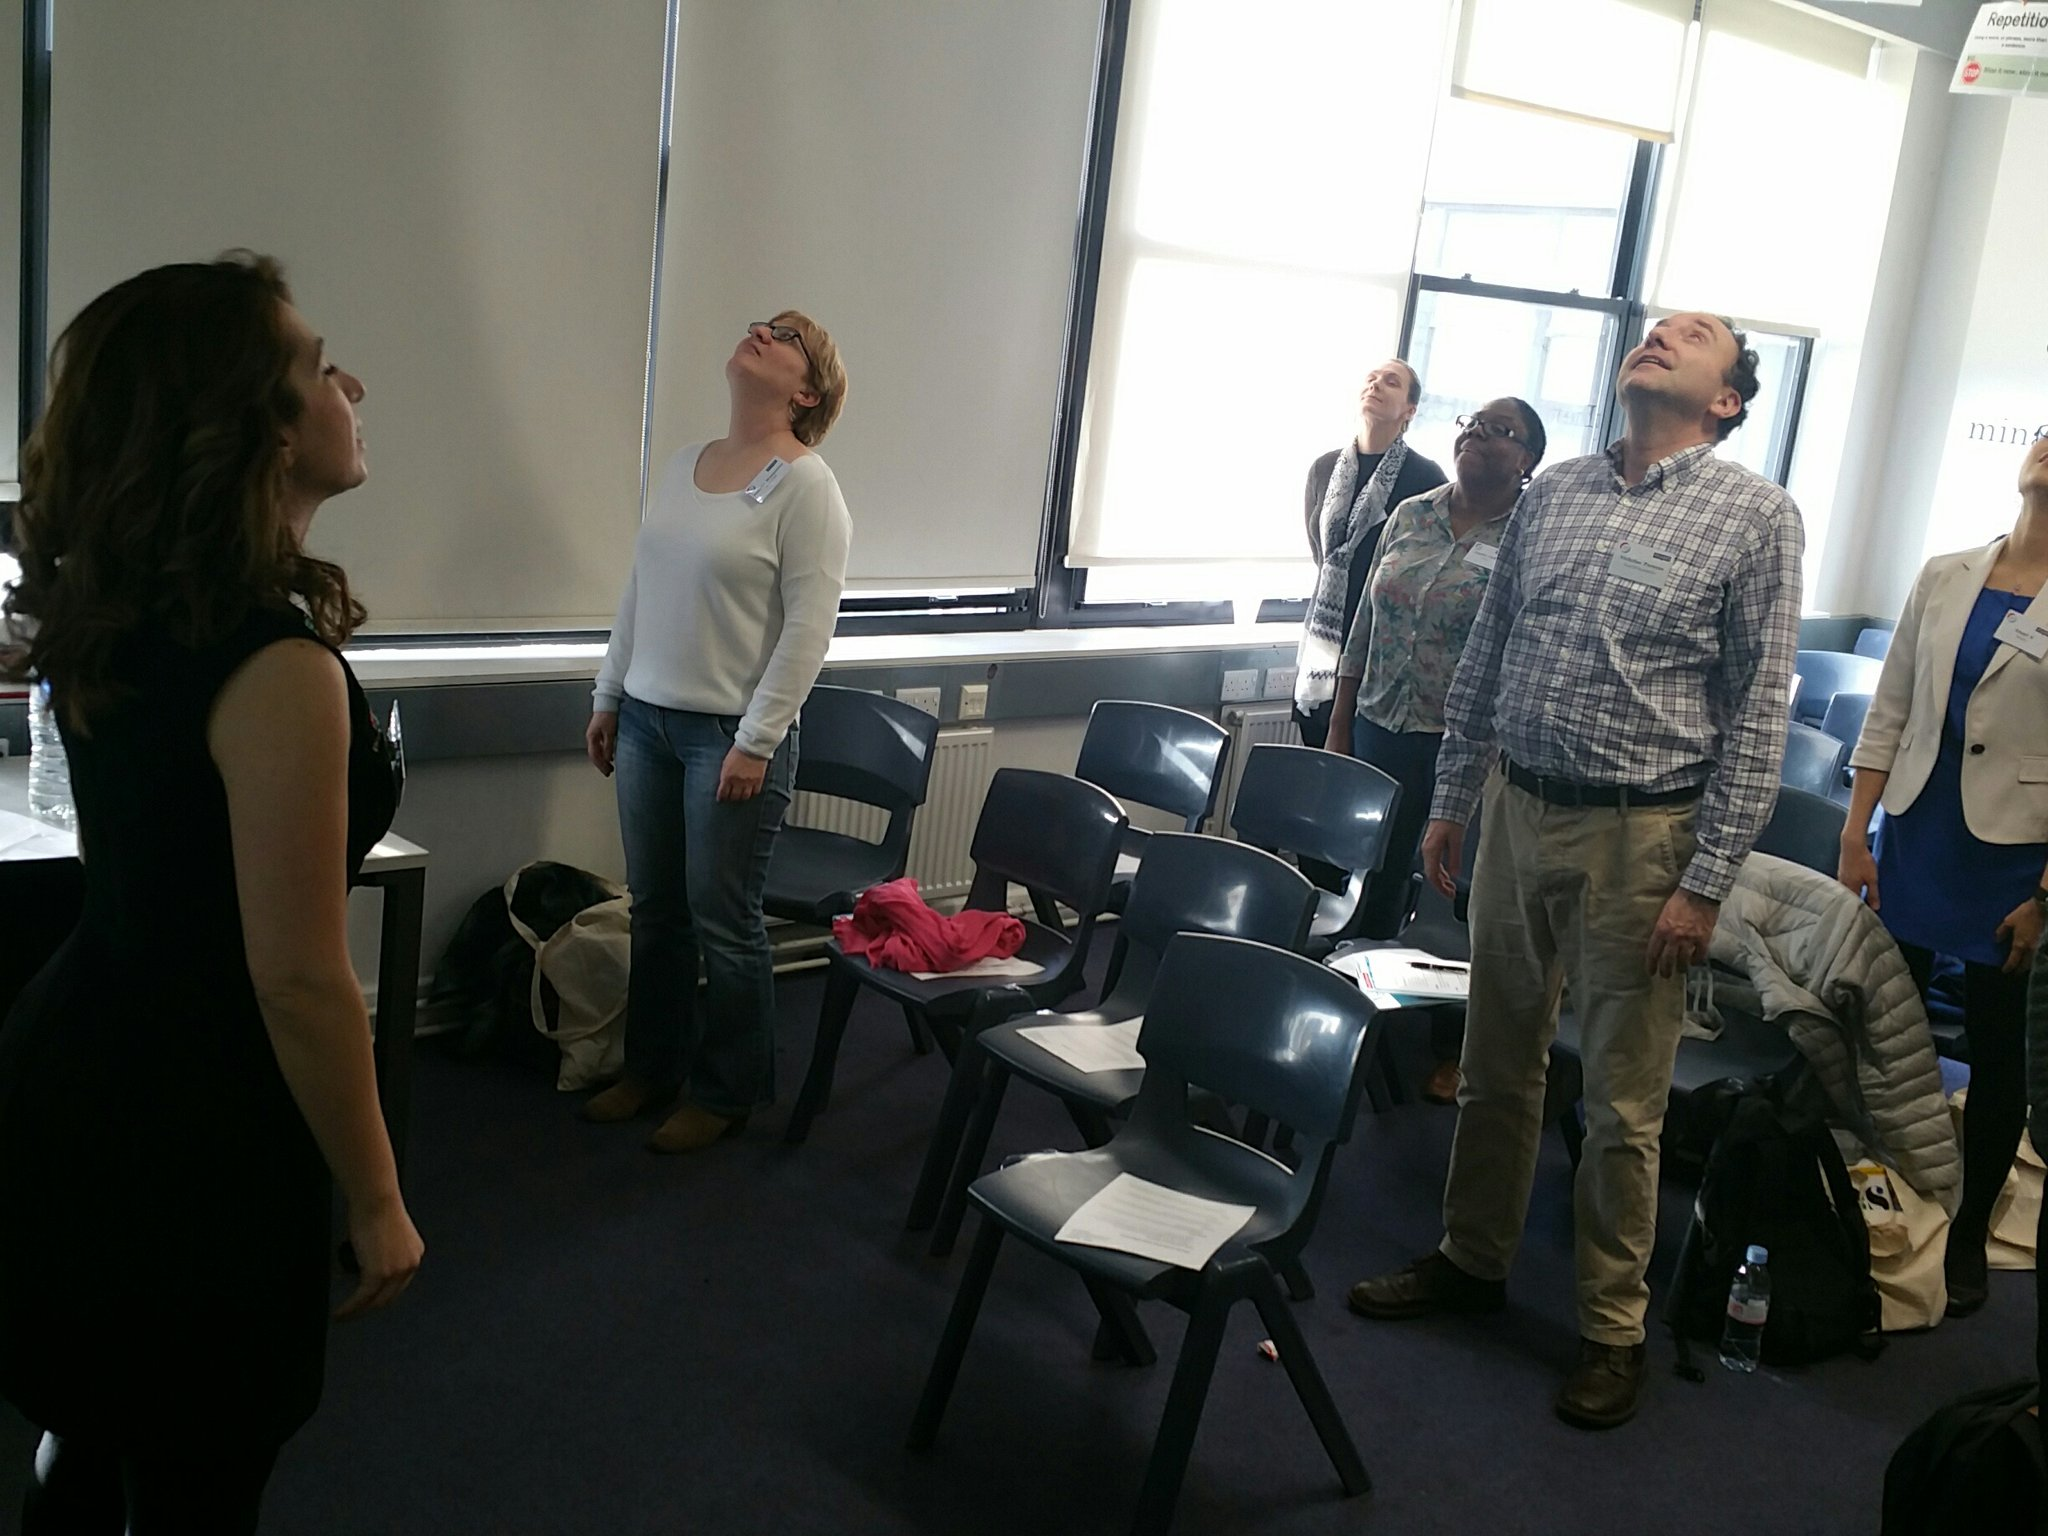 #teach2017 warm up for voice training for teachers with alexandra charalambous https://t.co/30DxdRBitl